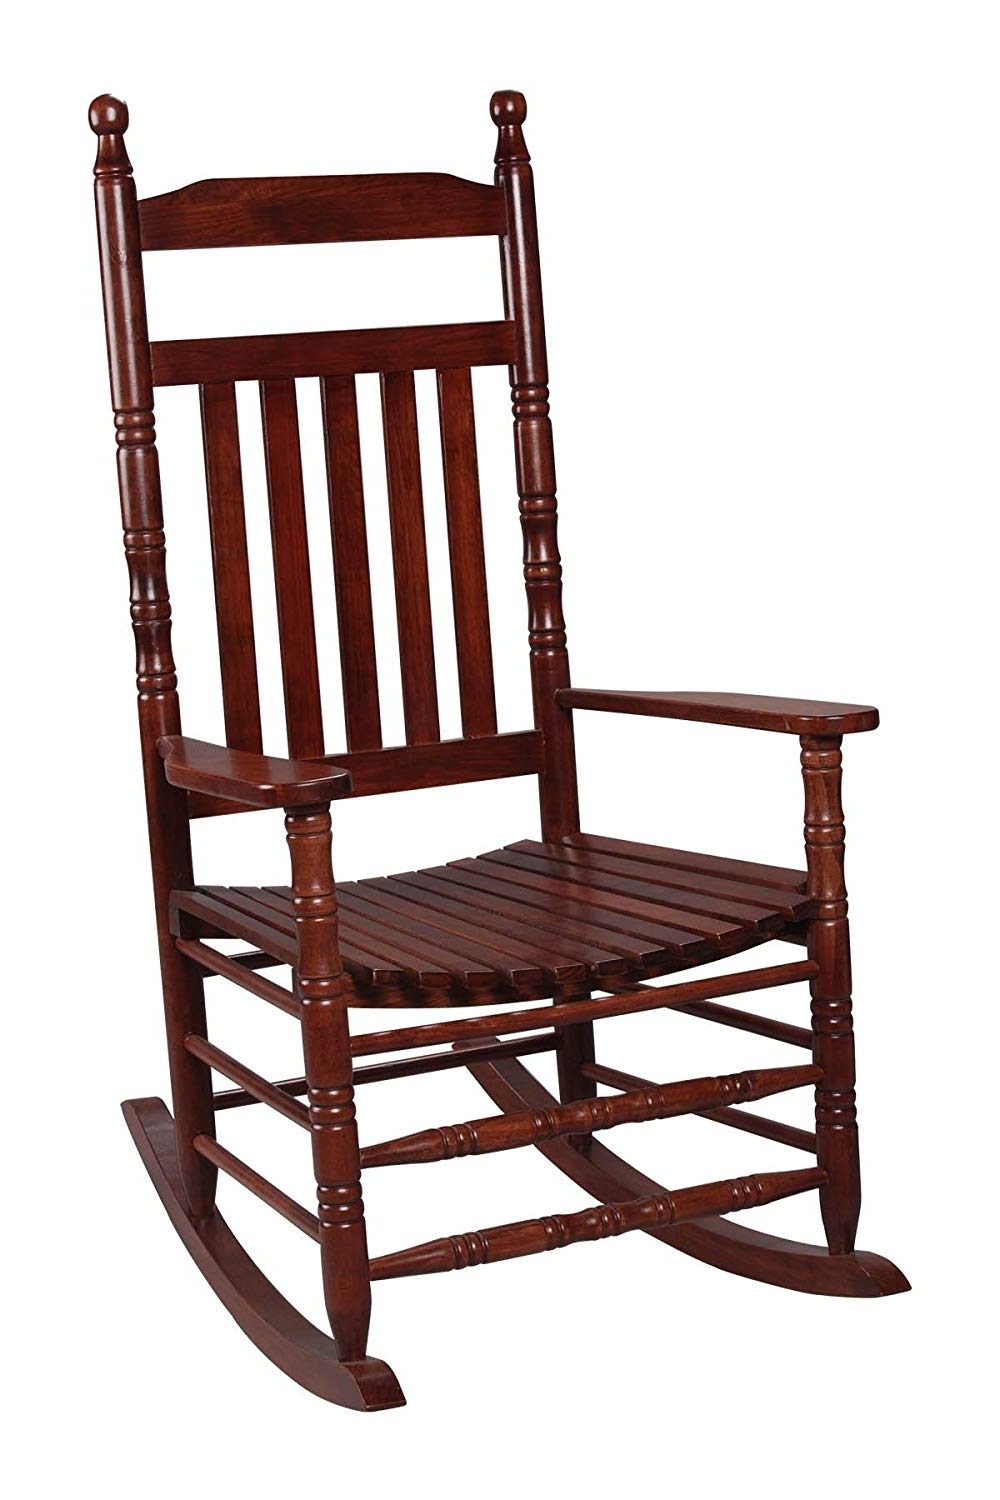 Amazon: Gift Mark Deluxe Adult Rocking Extra Tall Back Chair Pertaining To Popular Zen Rocking Chairs (View 9 of 15)